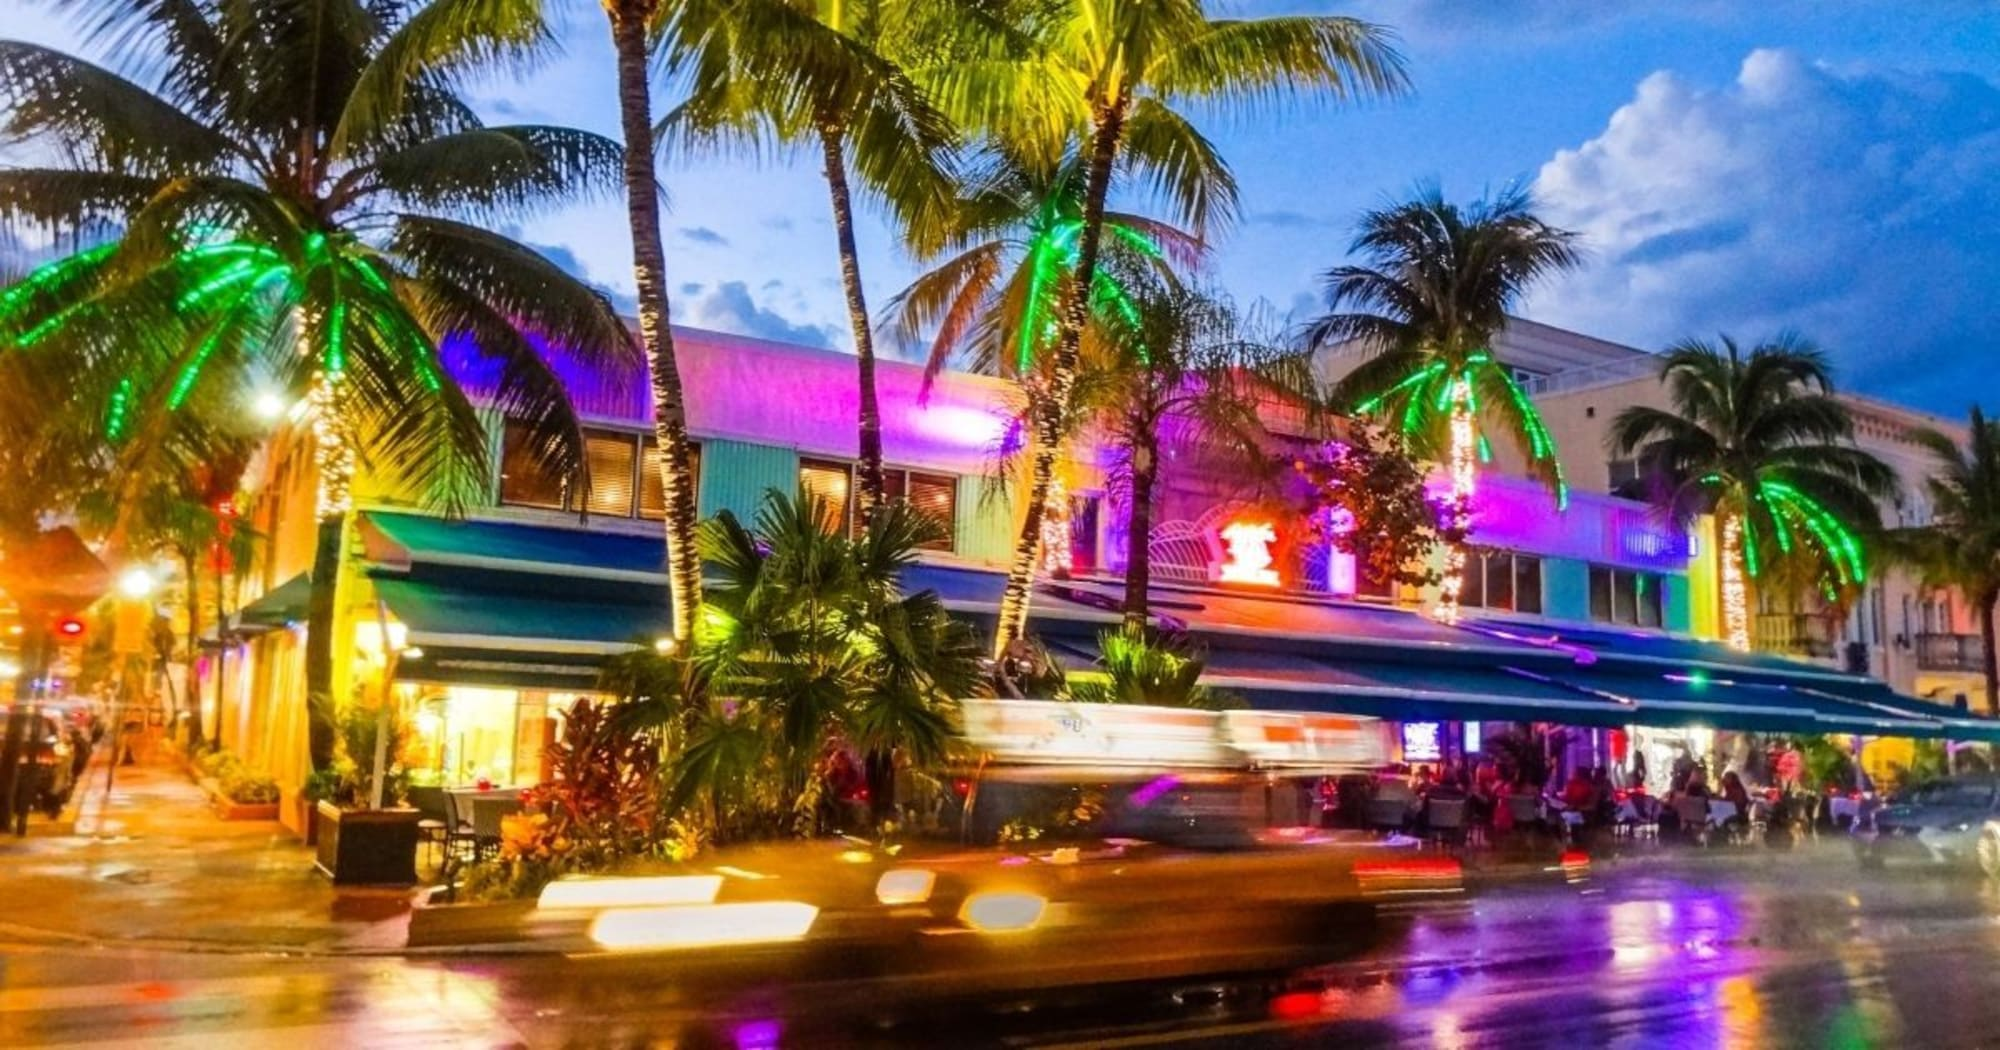 Experience the (2021) nightlife Boracay has to offer with these bars